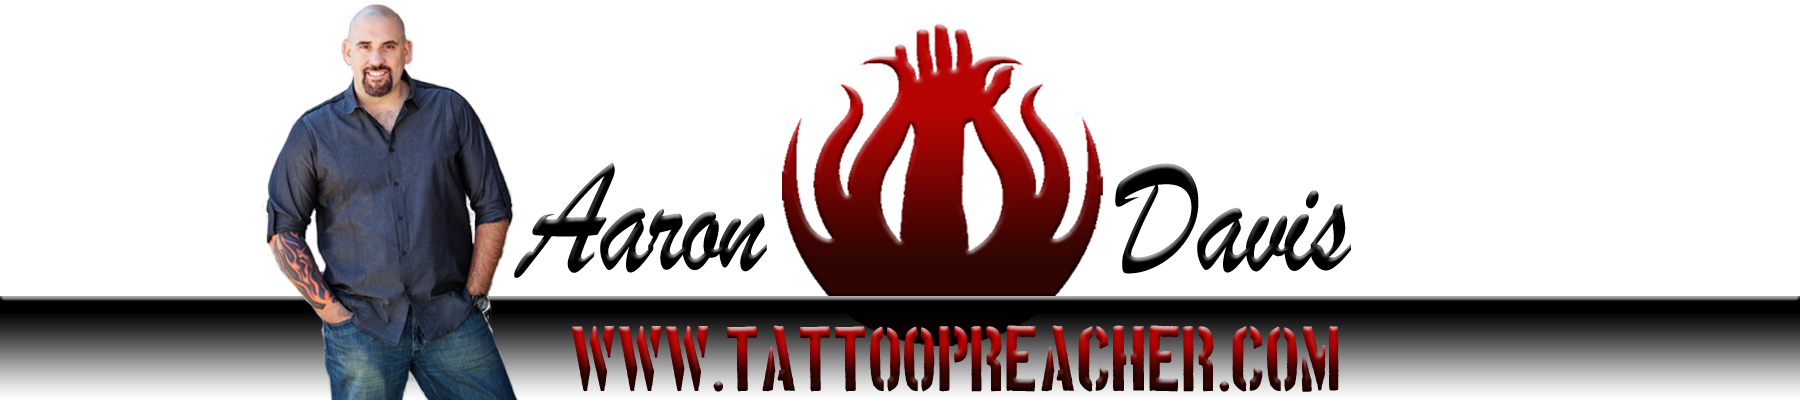 Official Site of the Tattooed Preacher